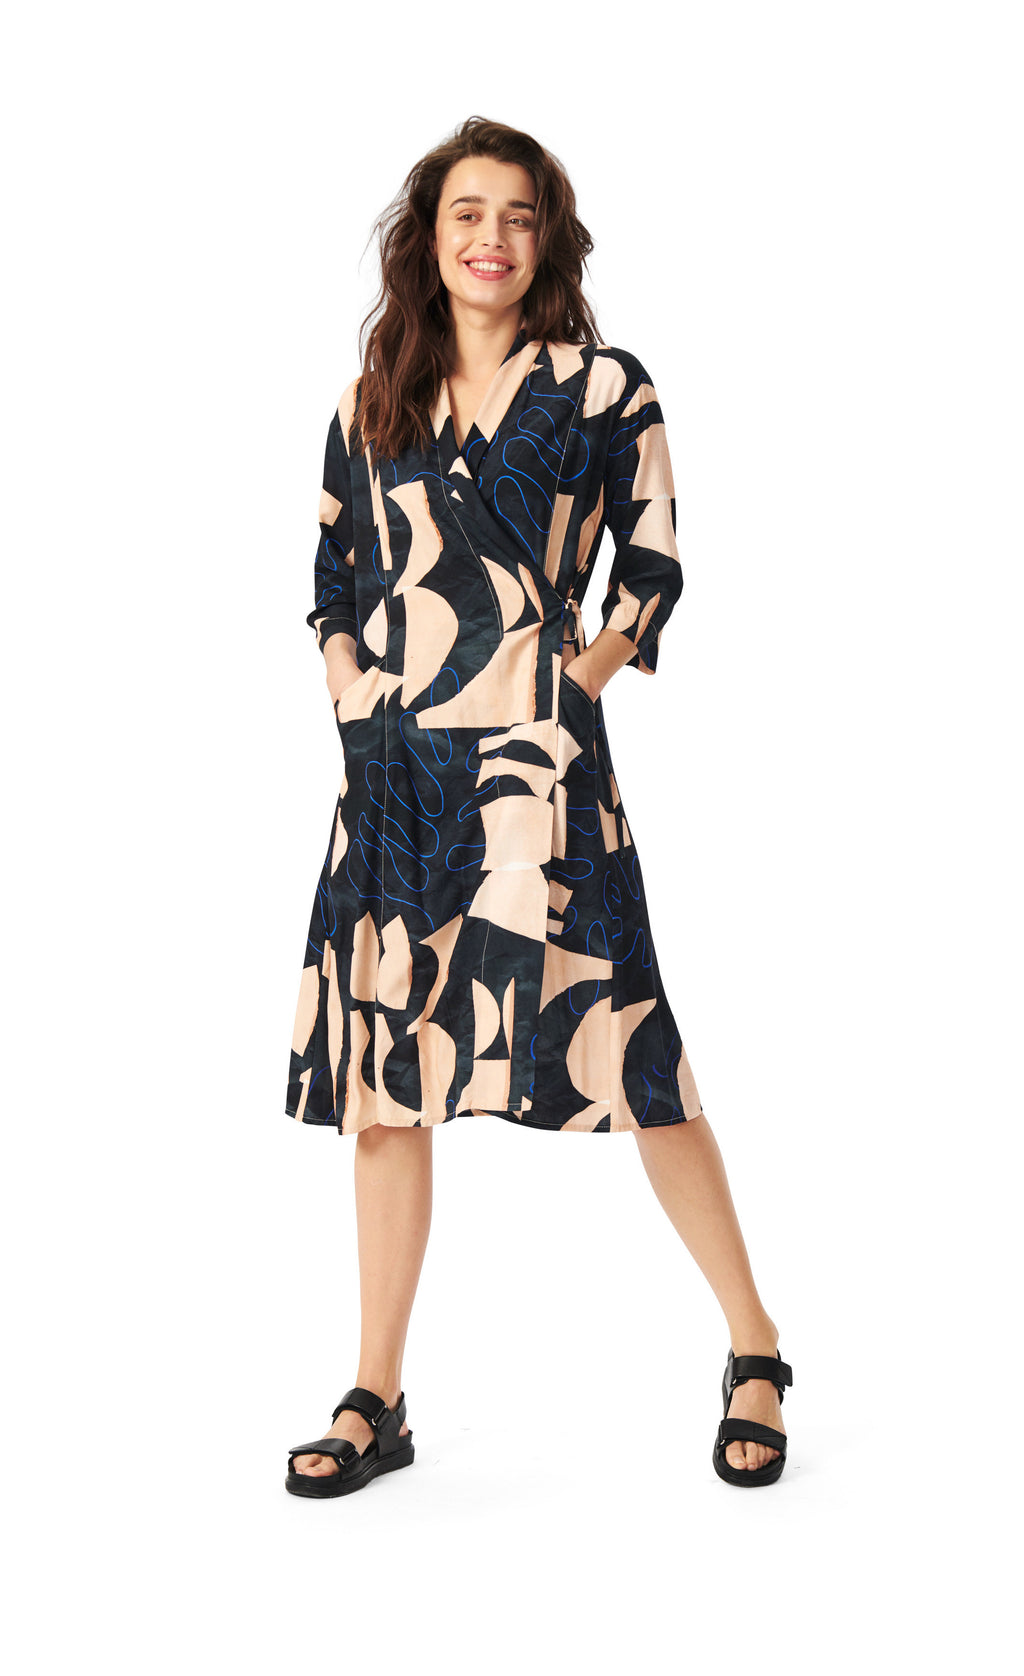 Front full body view of a woman wearing the bitte kai rand monstera wrap dress. This dress is nude with black and blue abstract print on it. The dress has a left side tie that creates a layered over look. The sleeves are 3/4 length and the dress ends at the knees.